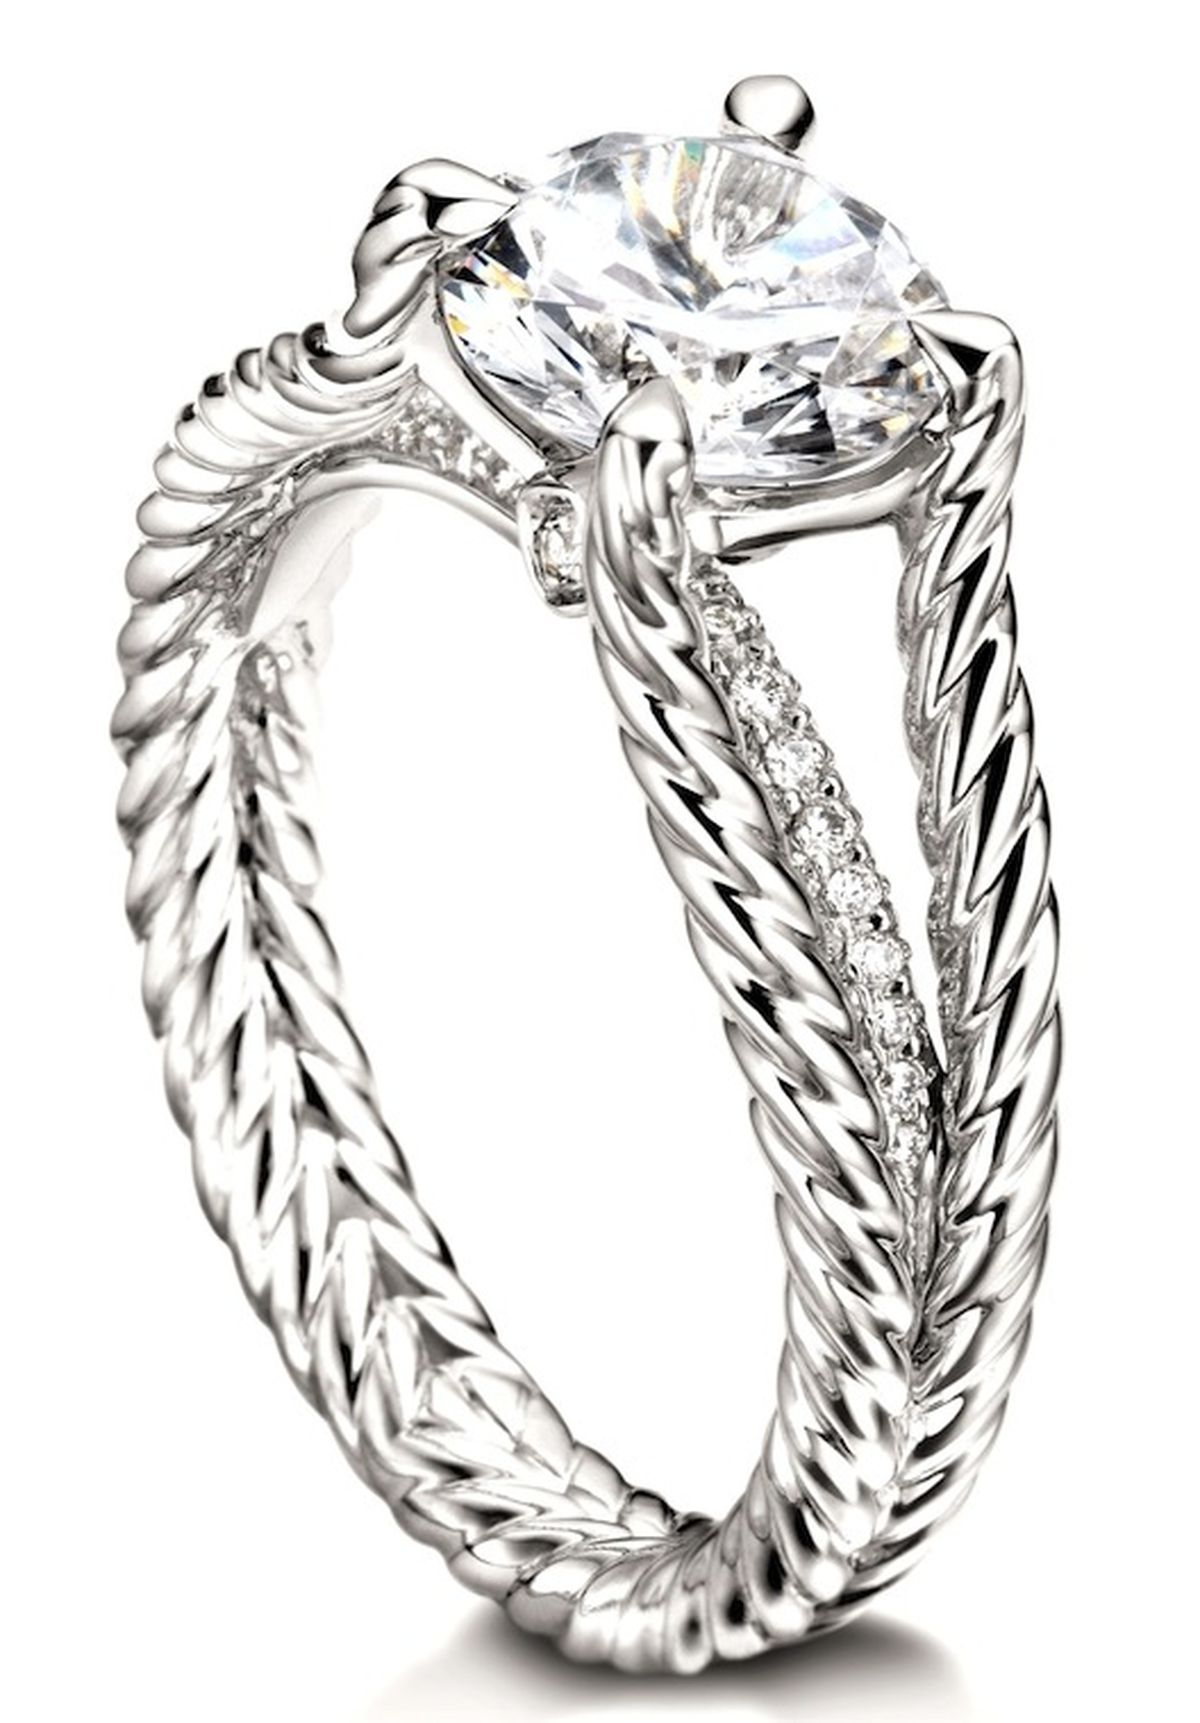 7 giant diamond engagement rings to ogle from david yurman